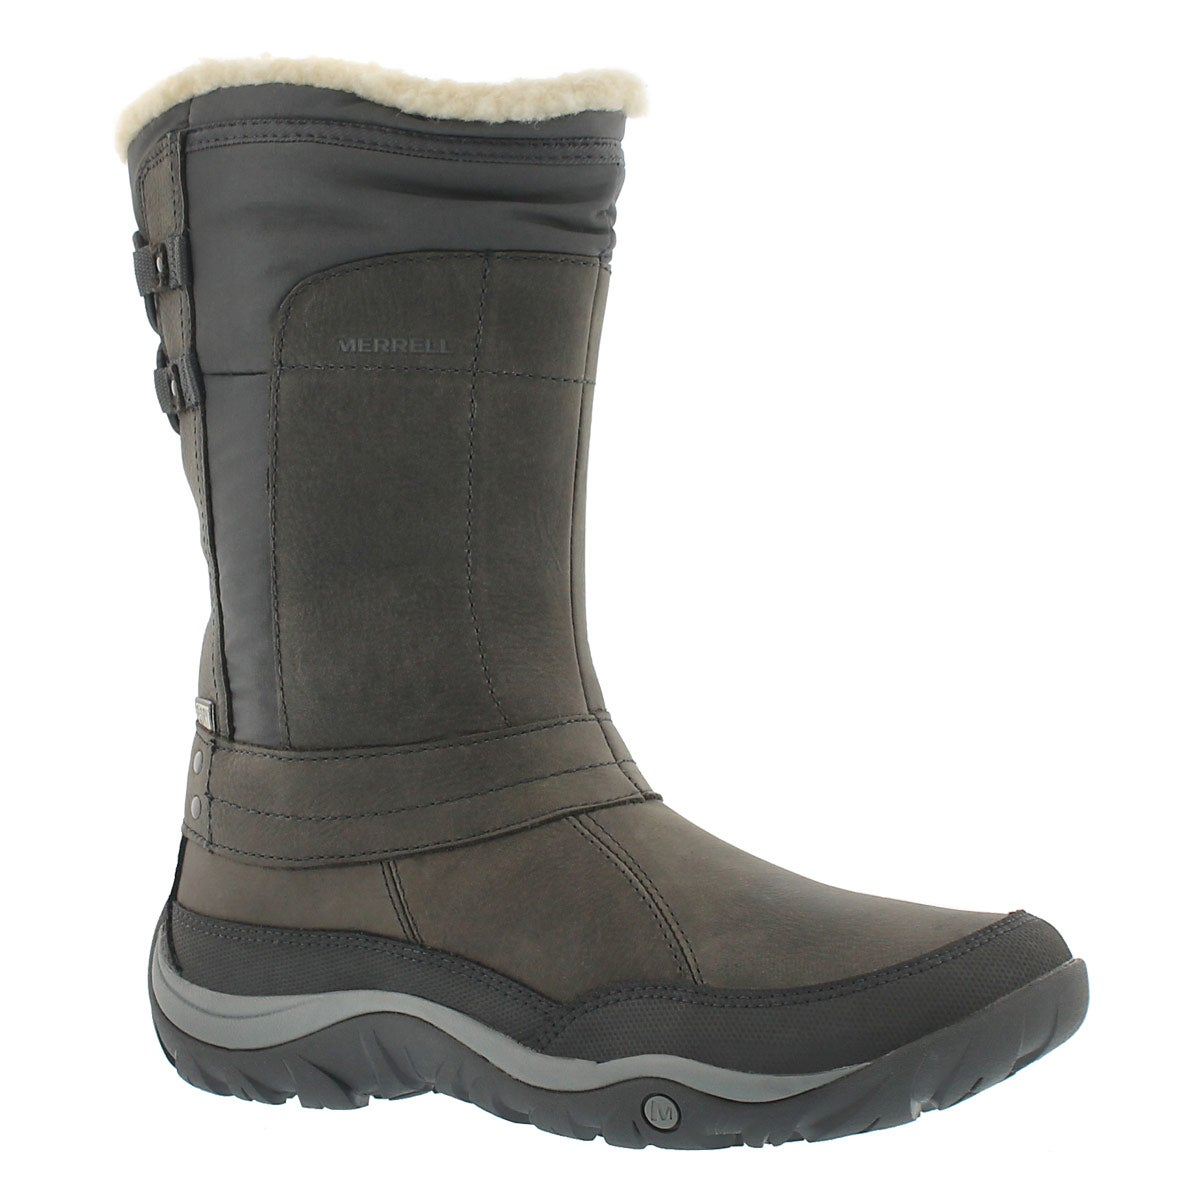 Lds Murren Mid wtpf pewter snow boot